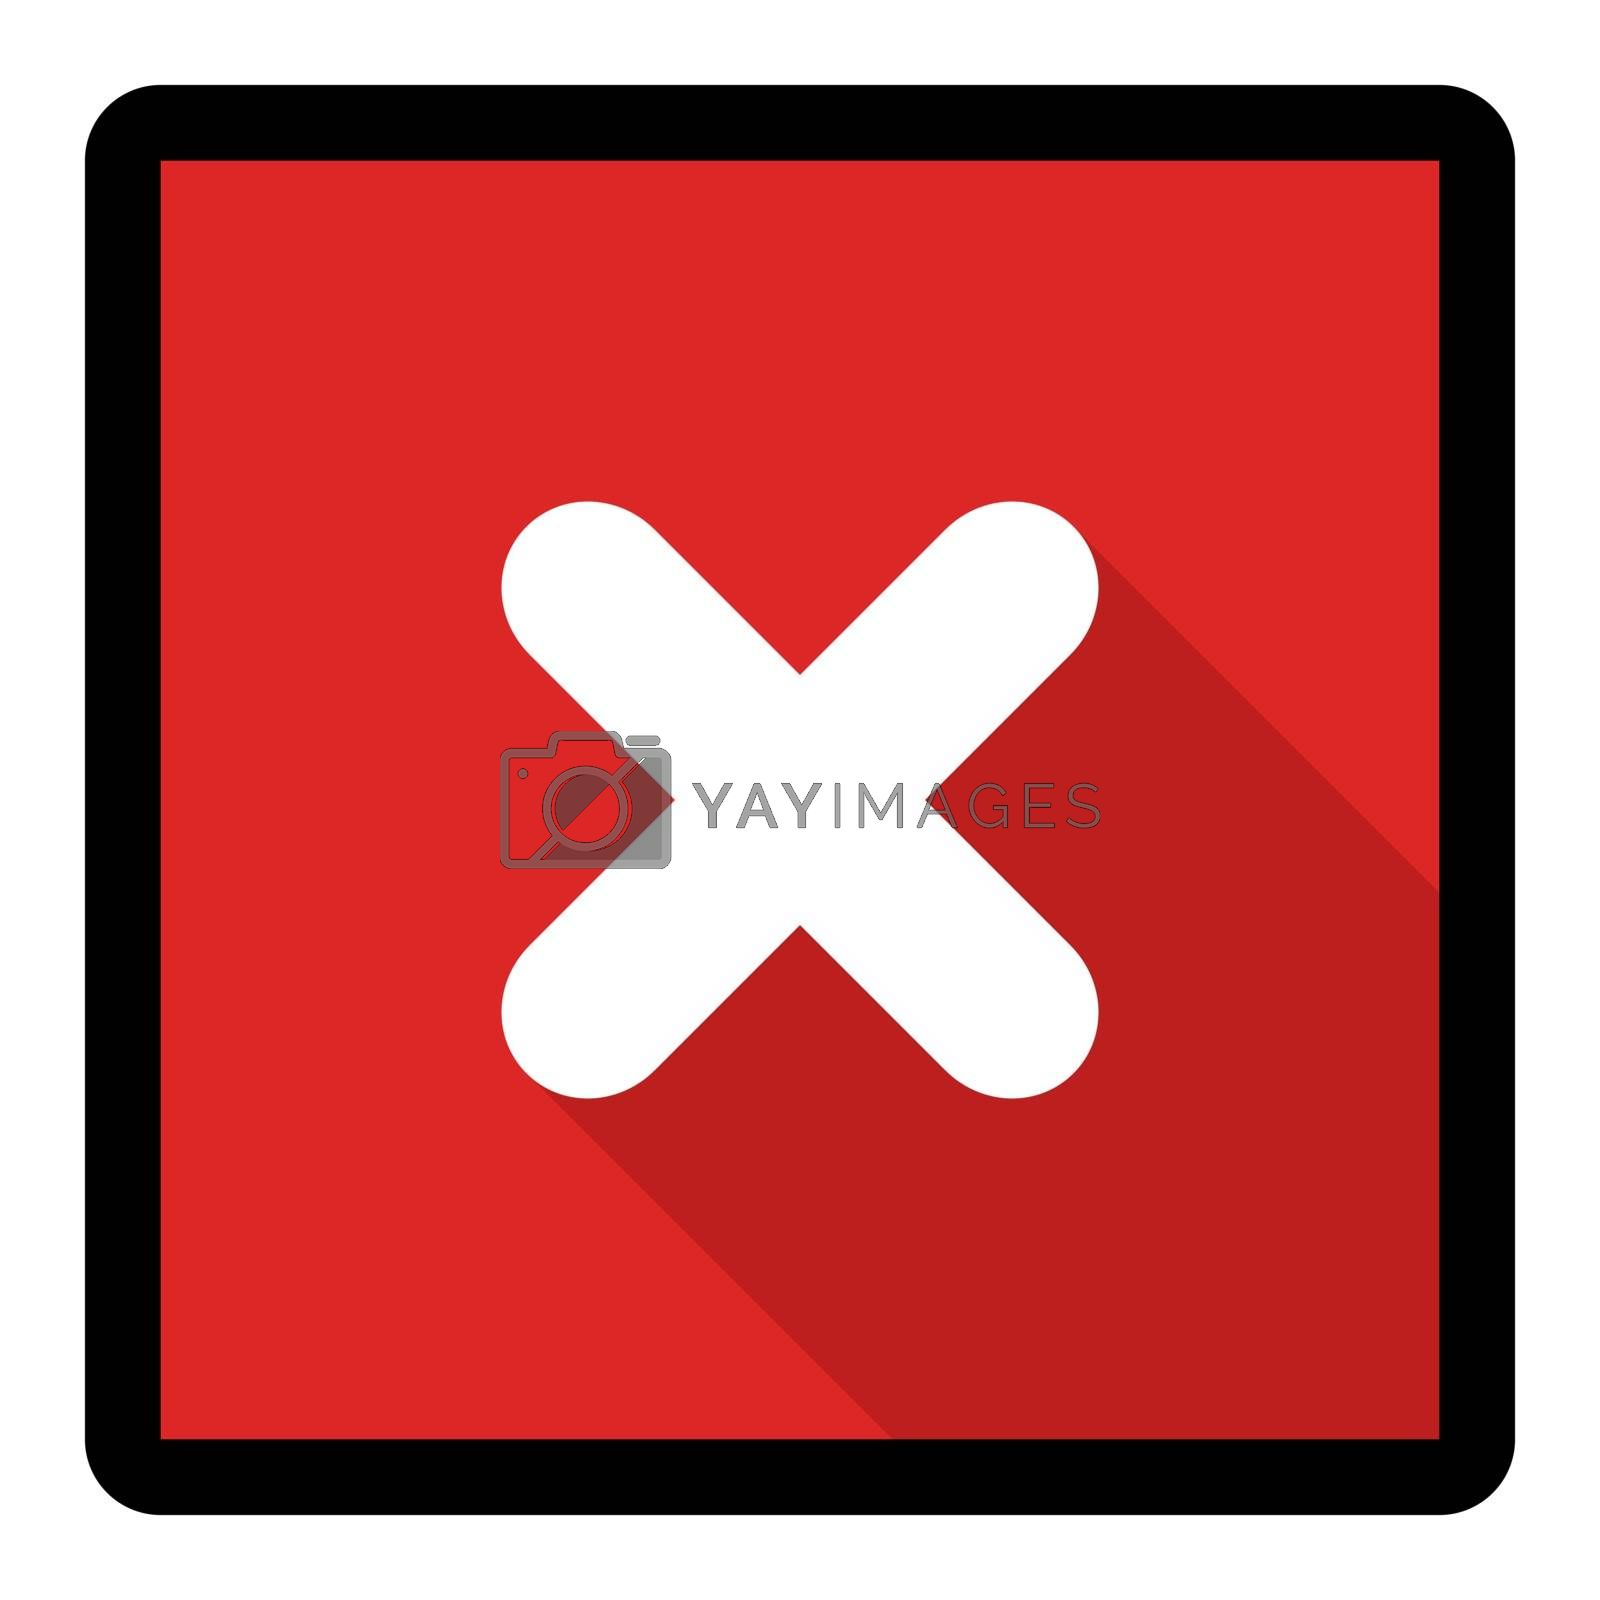 Wrong marks, Cross marks, Rejected, Disapproved, No, False, Not Ok, Wrong Choices, Task Completion, Voting. - vector mark symbols in red. Black stroke and shadow design. Isolated icon. Flat style vector illustration.